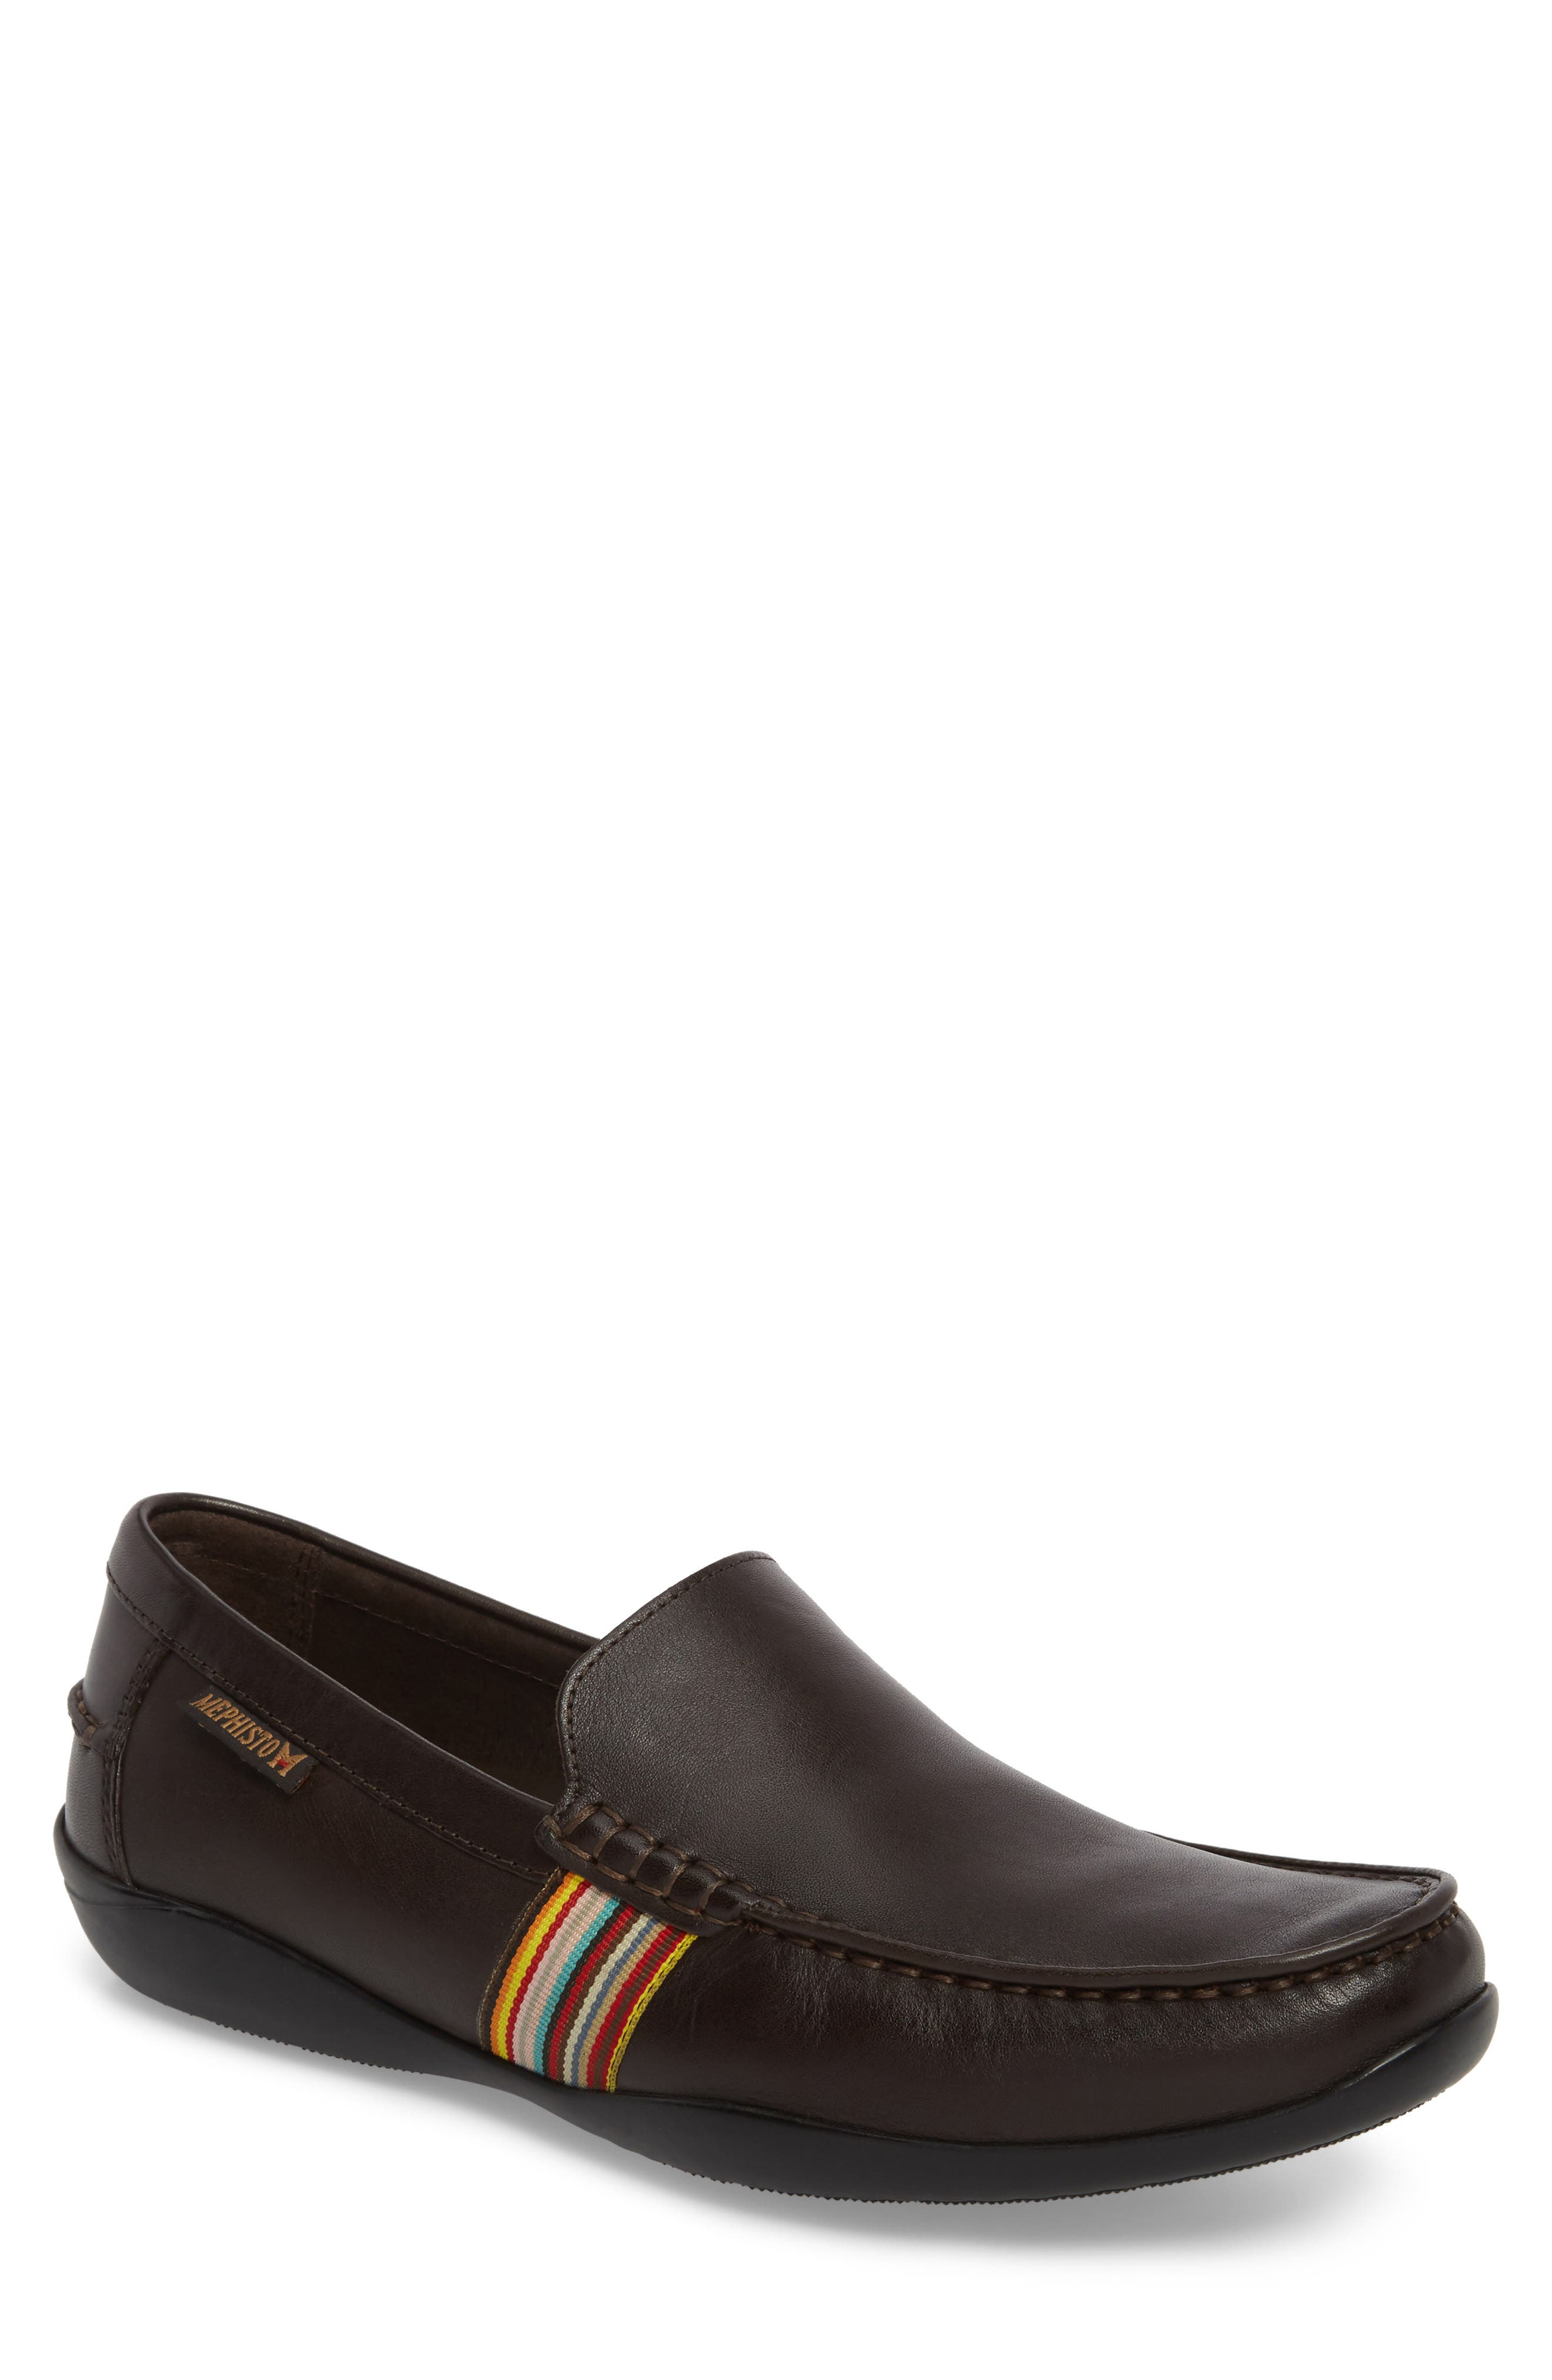 Idris Banded Loafer,                             Main thumbnail 1, color,                             Dark Brown Leather